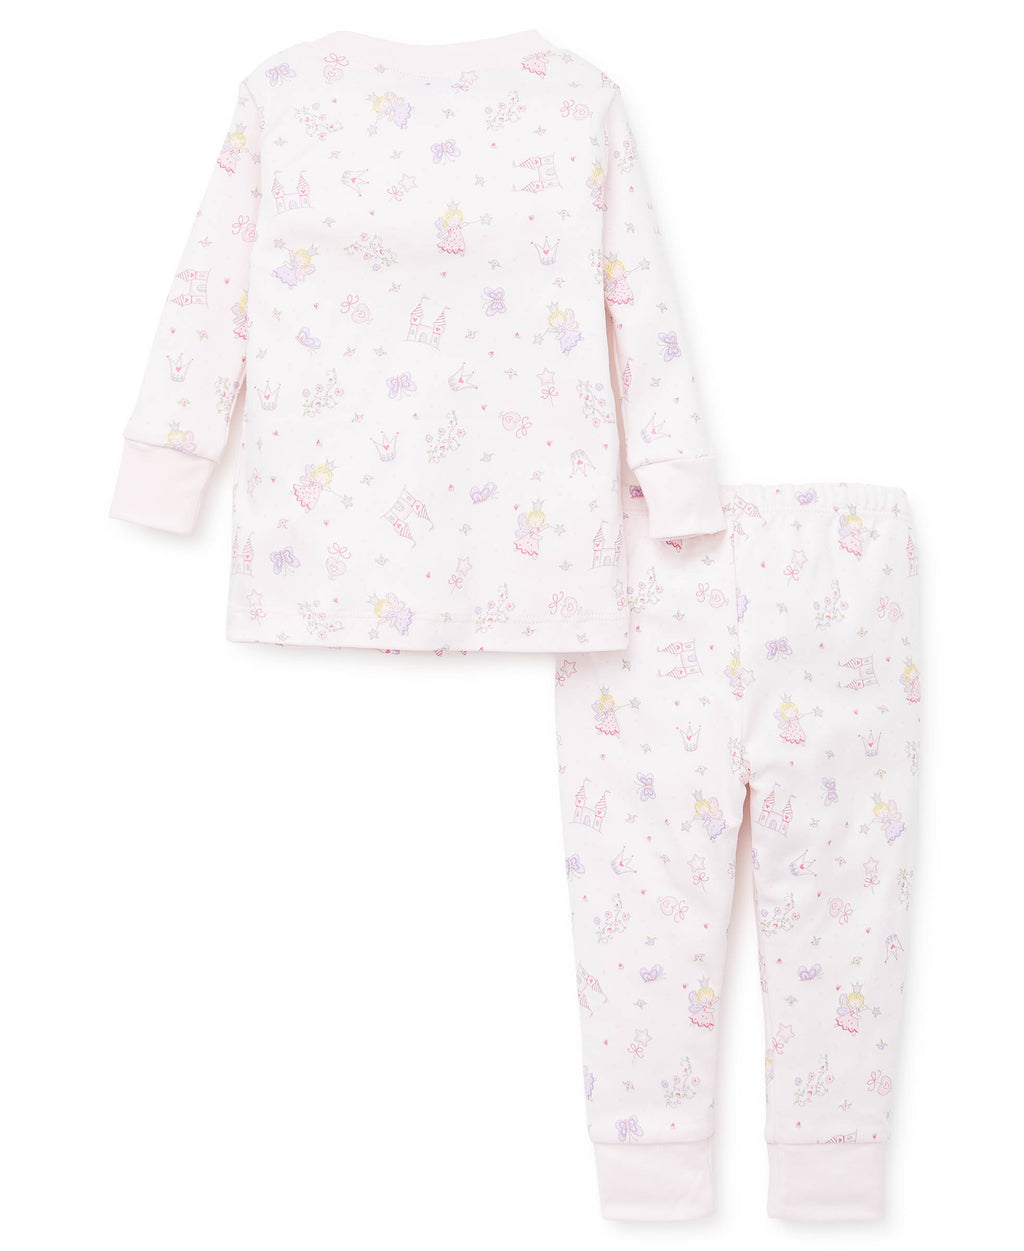 Fairyland Pajama Set